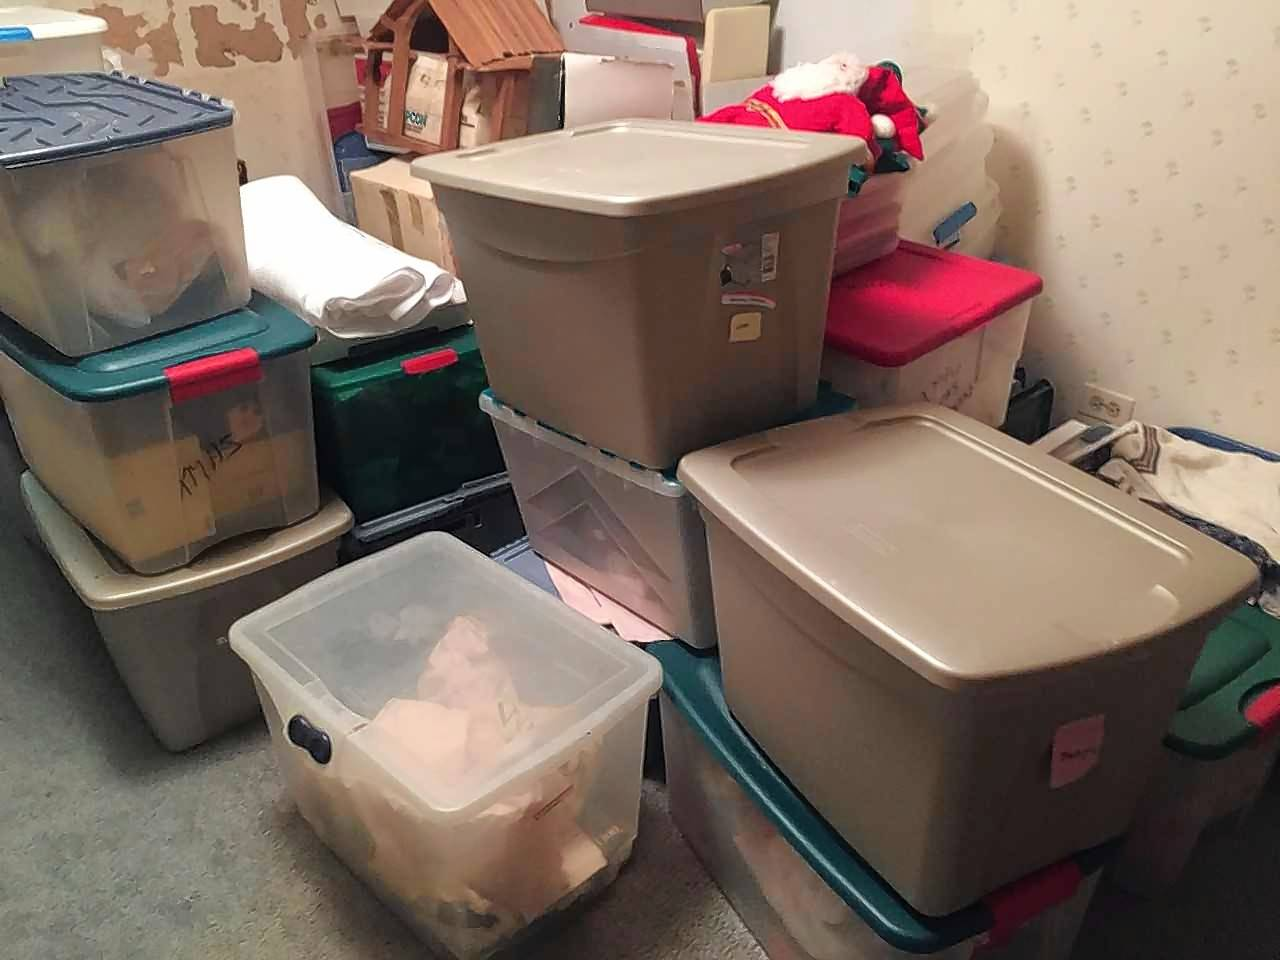 A lot of the Christmas stuff in these boxes pulled from the attic has never been used, or hasn't been used for decades. But dealing with loved ones' stuff often is more emotional than practical.